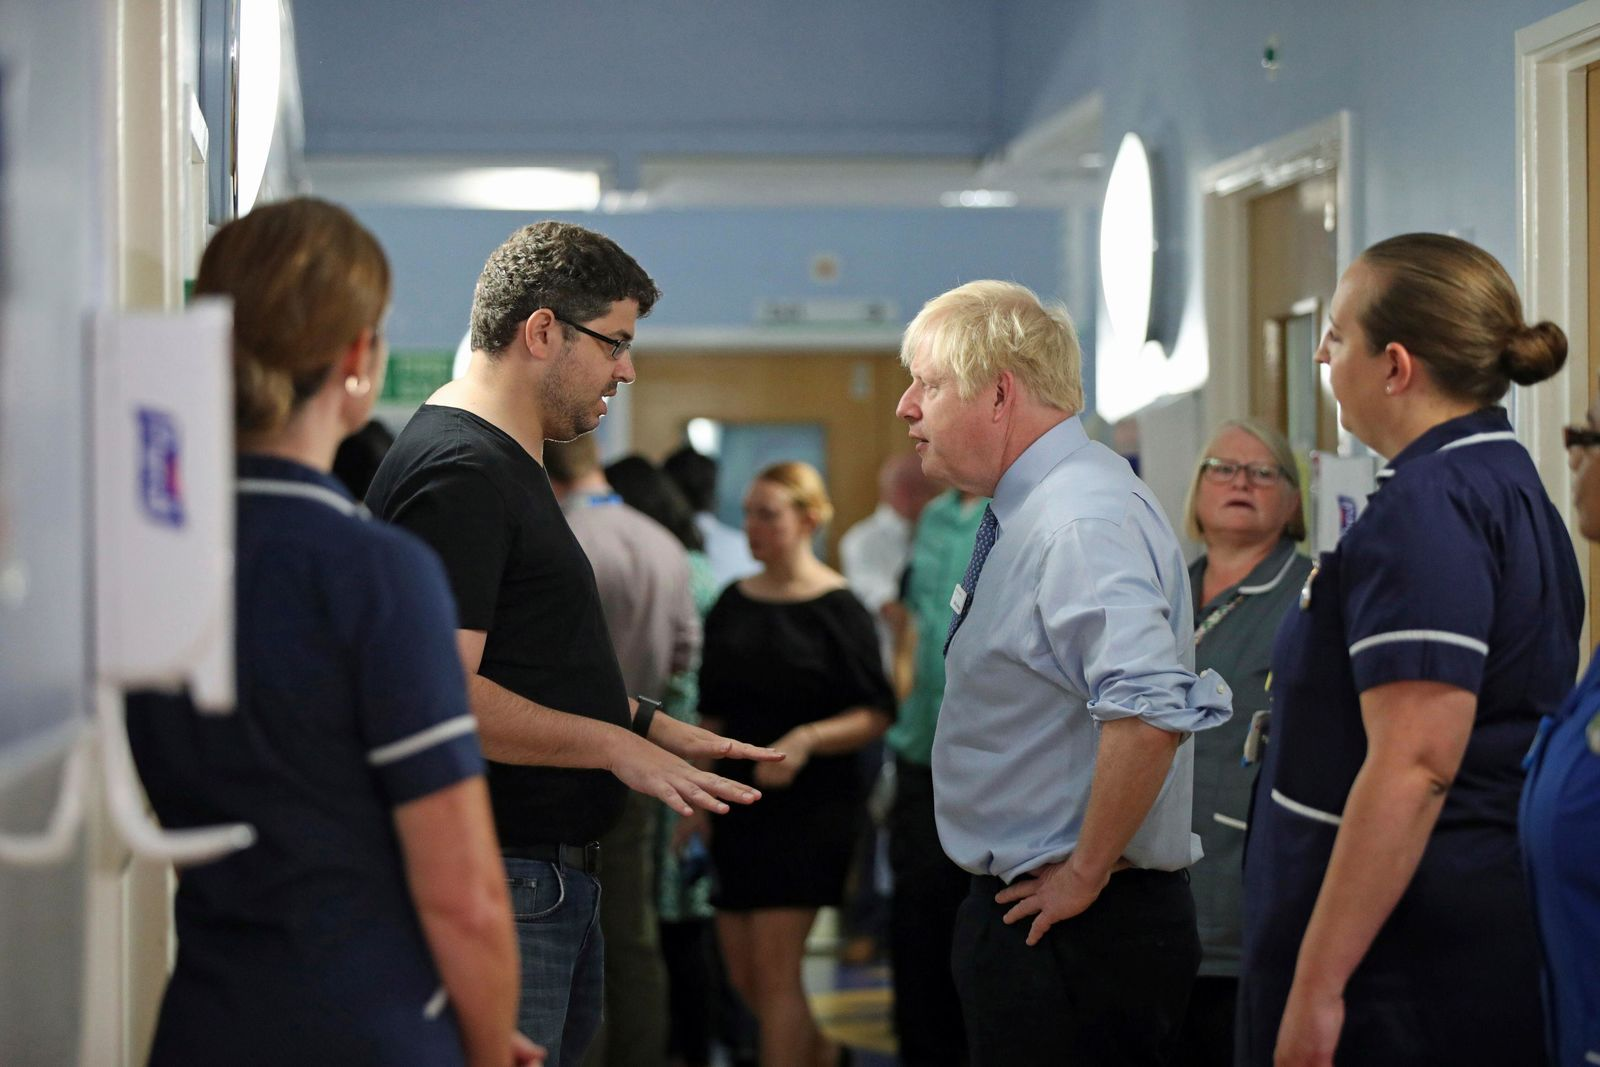 The father of a young patient, who is being treated in the Acorn children's ward, talks to Britain's Prime Minister Boris Johnson during his visit to Whipps Cross University Hospital in Leytonstone, east London, Wednesday Sept. 18, 2019. (Yui Mok/Pool via AP)